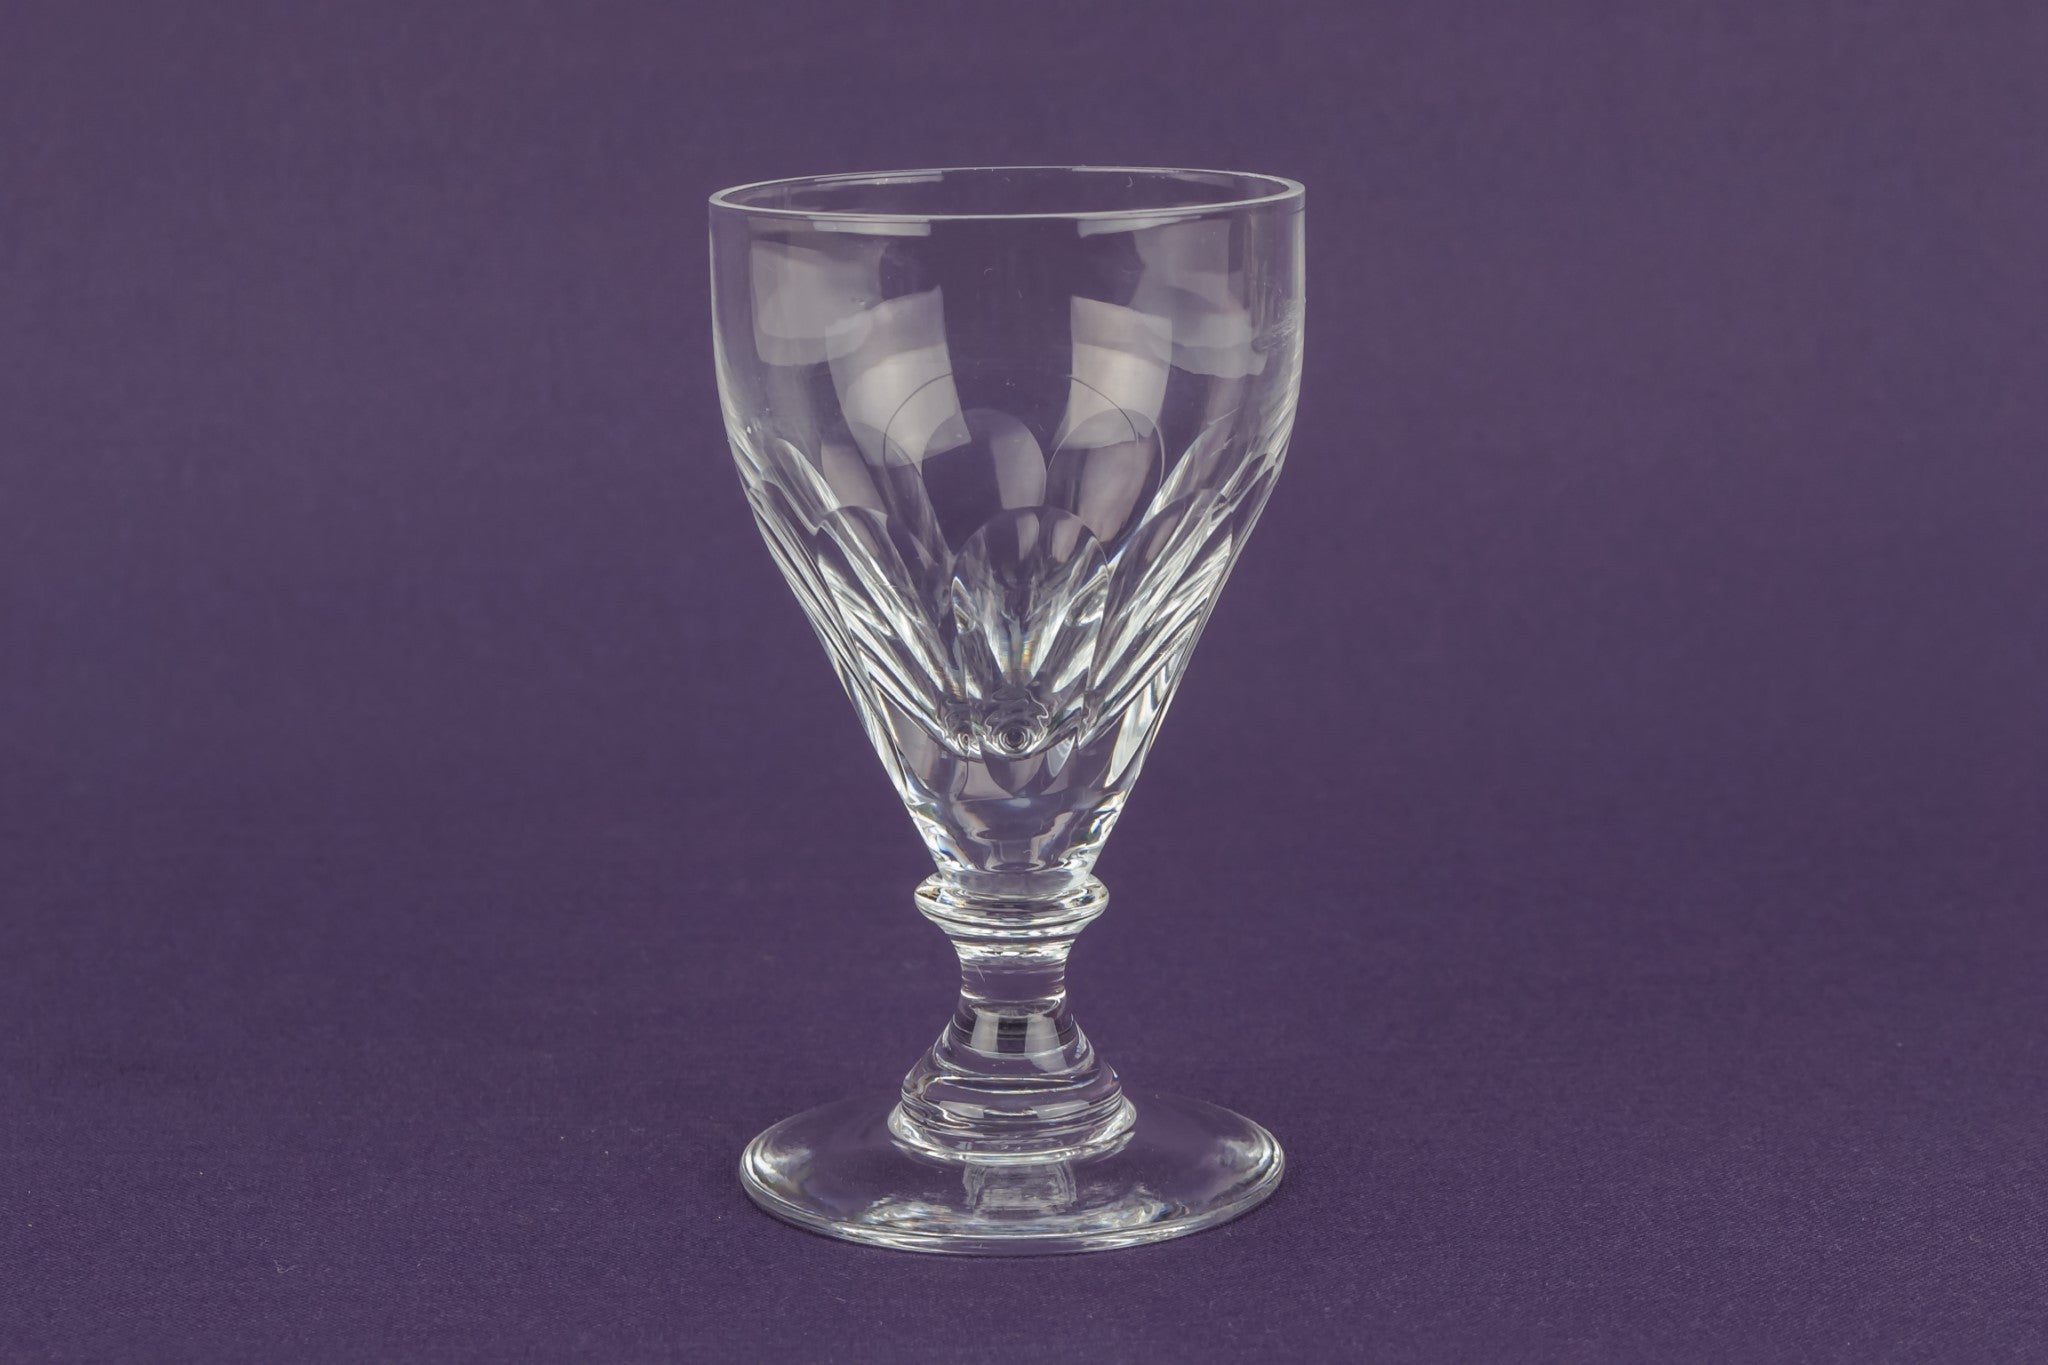 6 stem port glasses